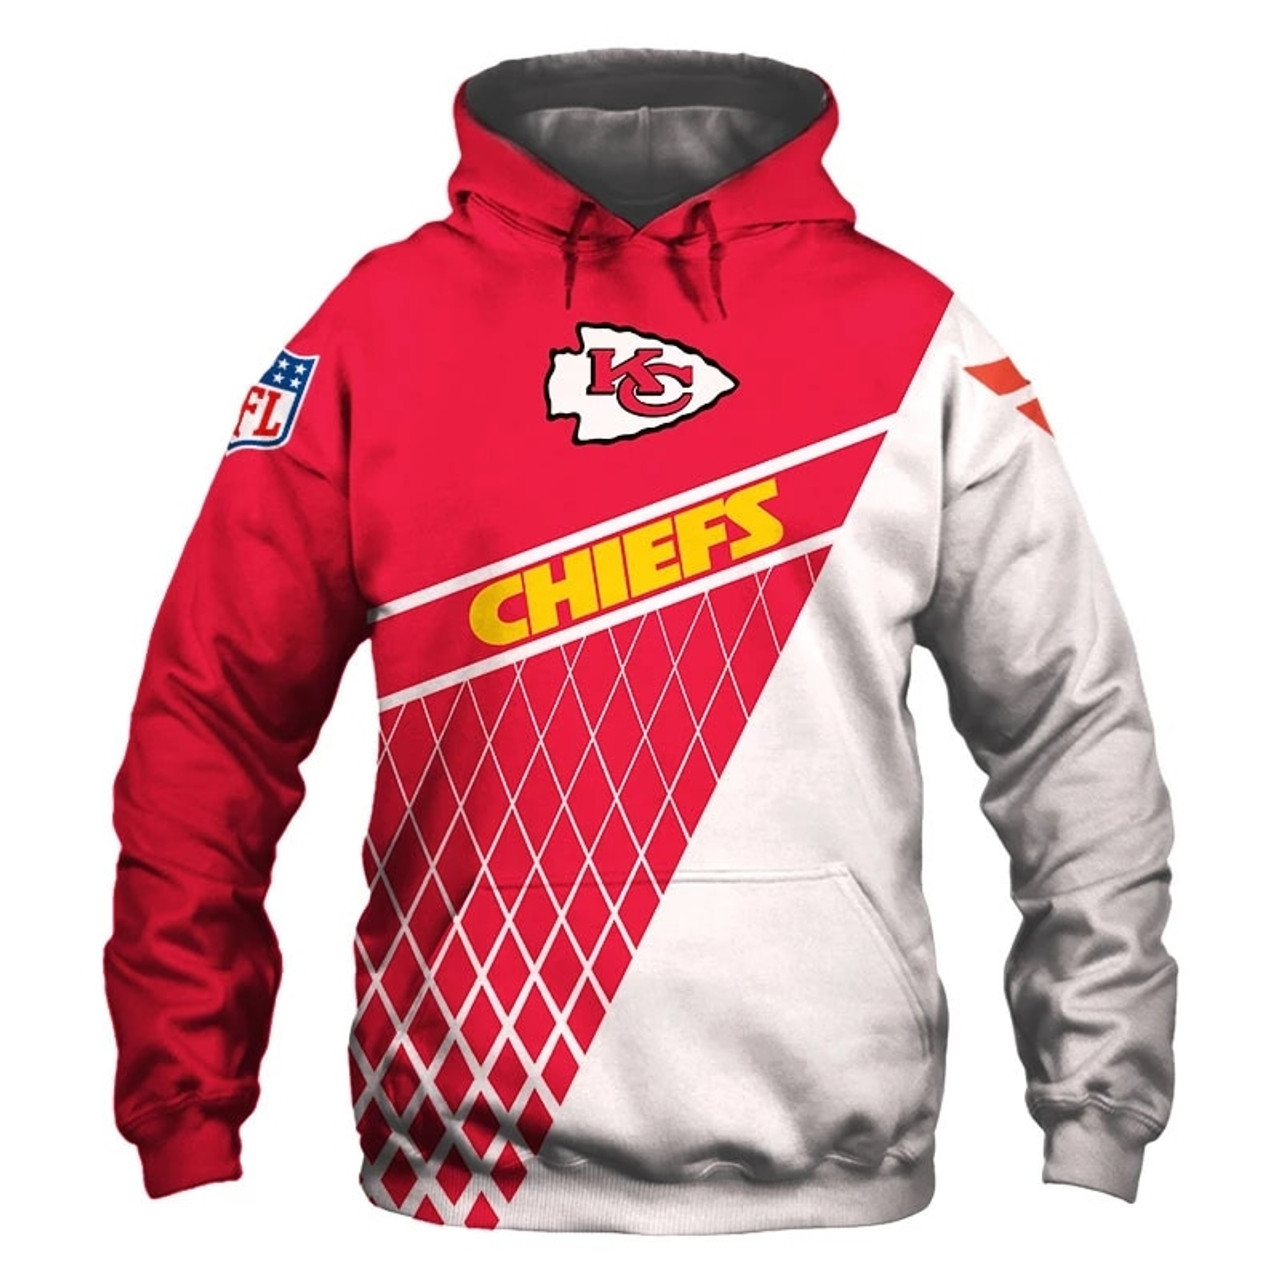 **(OFFICIAL-N.F.L.KANSAS-CITY-CHIEFS-FASHION-PULLOVER-TEAM-HOODIES/CUSTOM-3D-GRAPHIC-PRINTED-DETAILED-DOUBLE-SIDED/CLASSIC-OFFICIAL-CHIEFS-TEAM-LOGOS & OFFICIAL-CHIEFS-TEAM-COLORS/WARM-PREMIUM-OFFICIAL-N.F.L.CHIEFS-FAN-TEAM-PULLOVER-POCKET-HOODIES)**